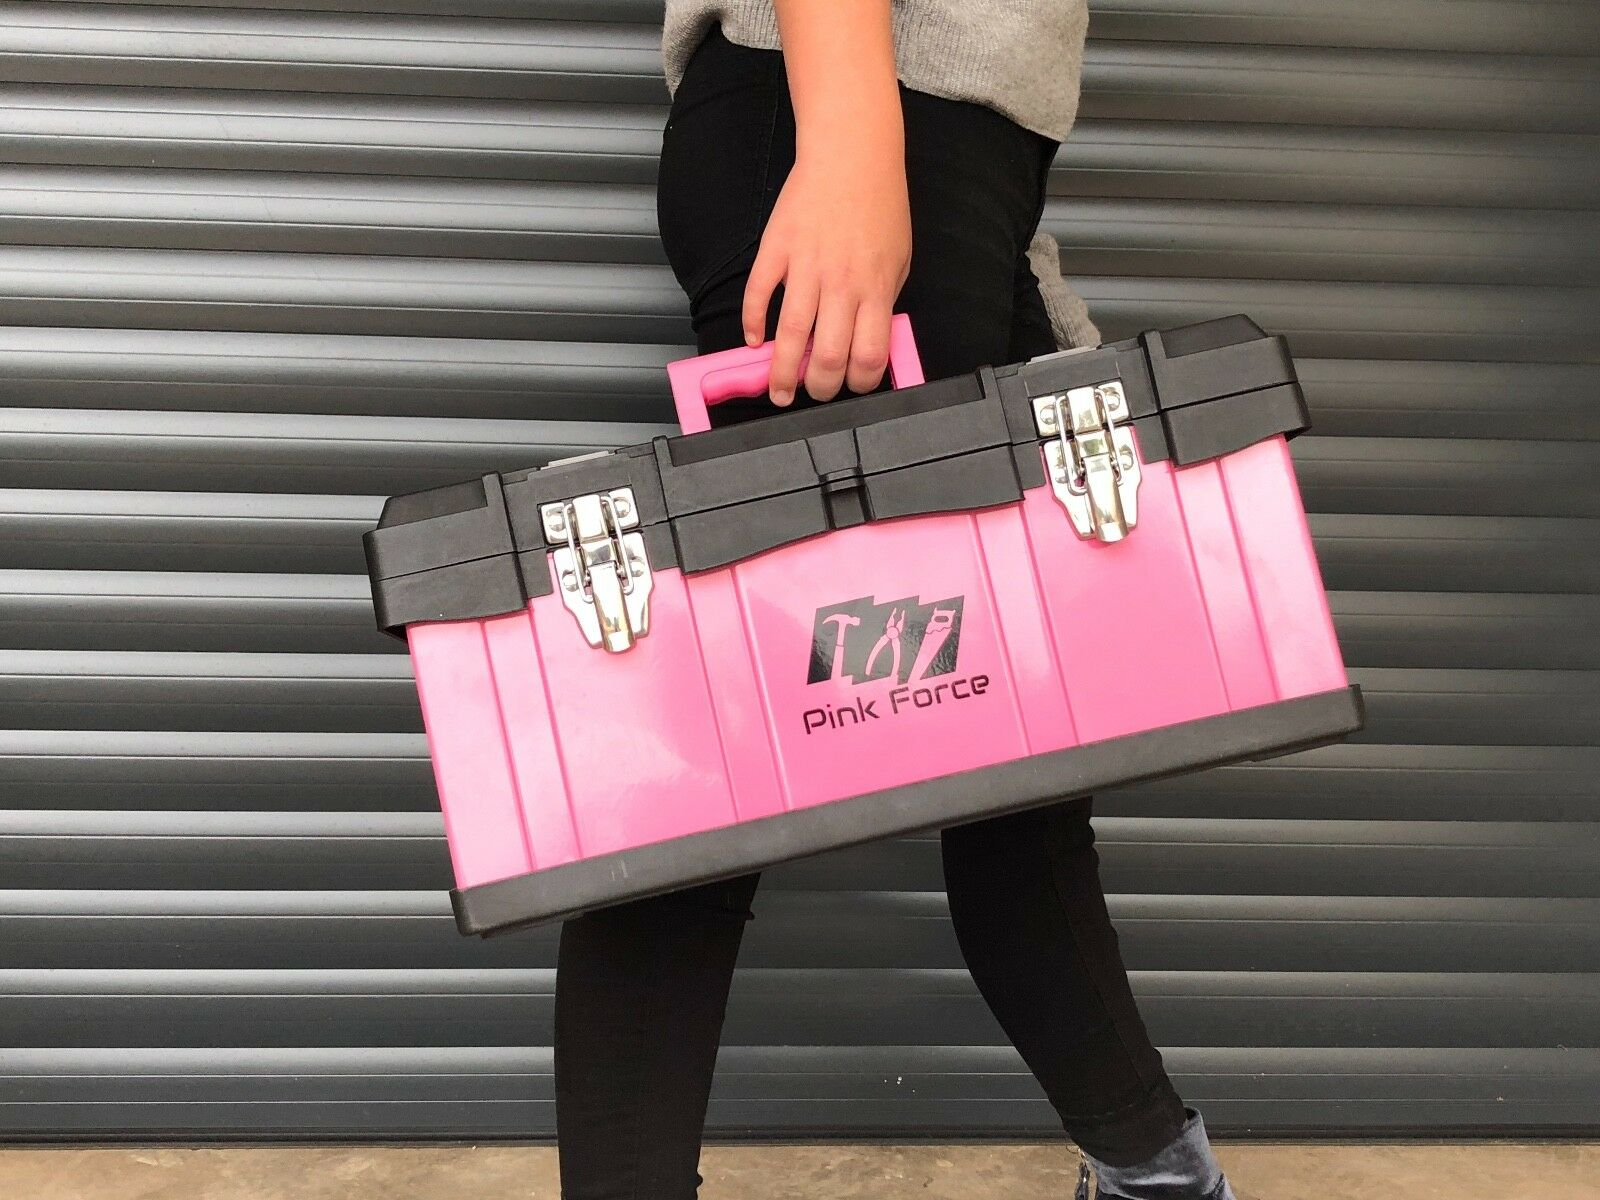 Pink Storage Box, Metal Heavy Duty, Brand New, Sale With Free Delivery